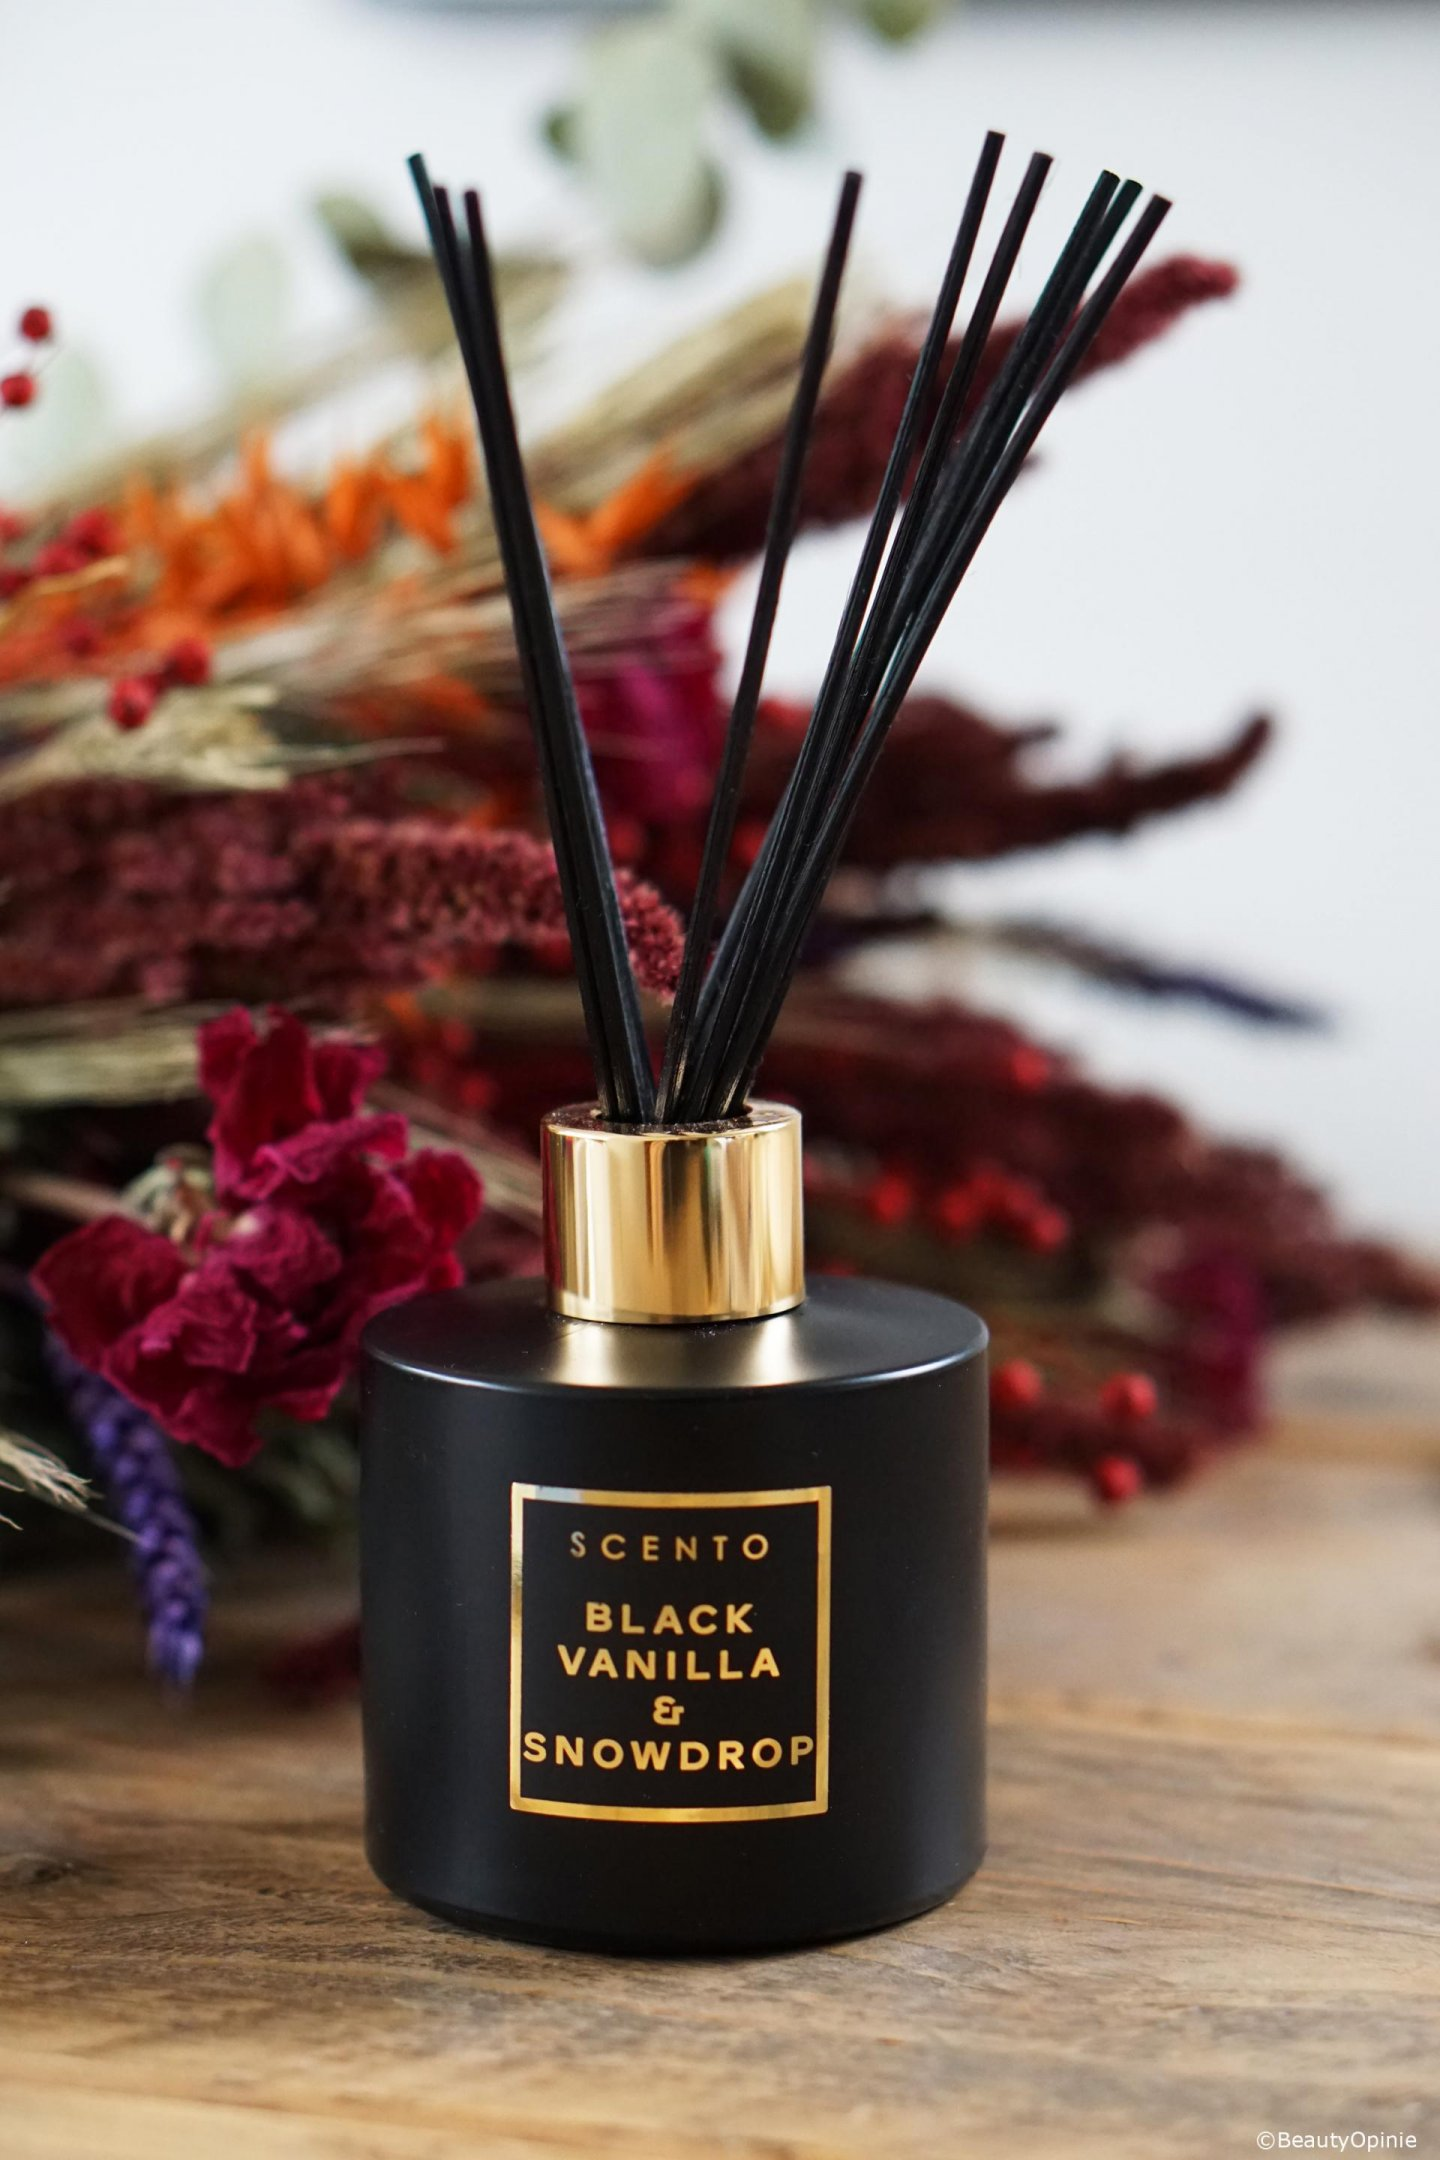 Black vanilla & snowdrop fragrance diffuser review